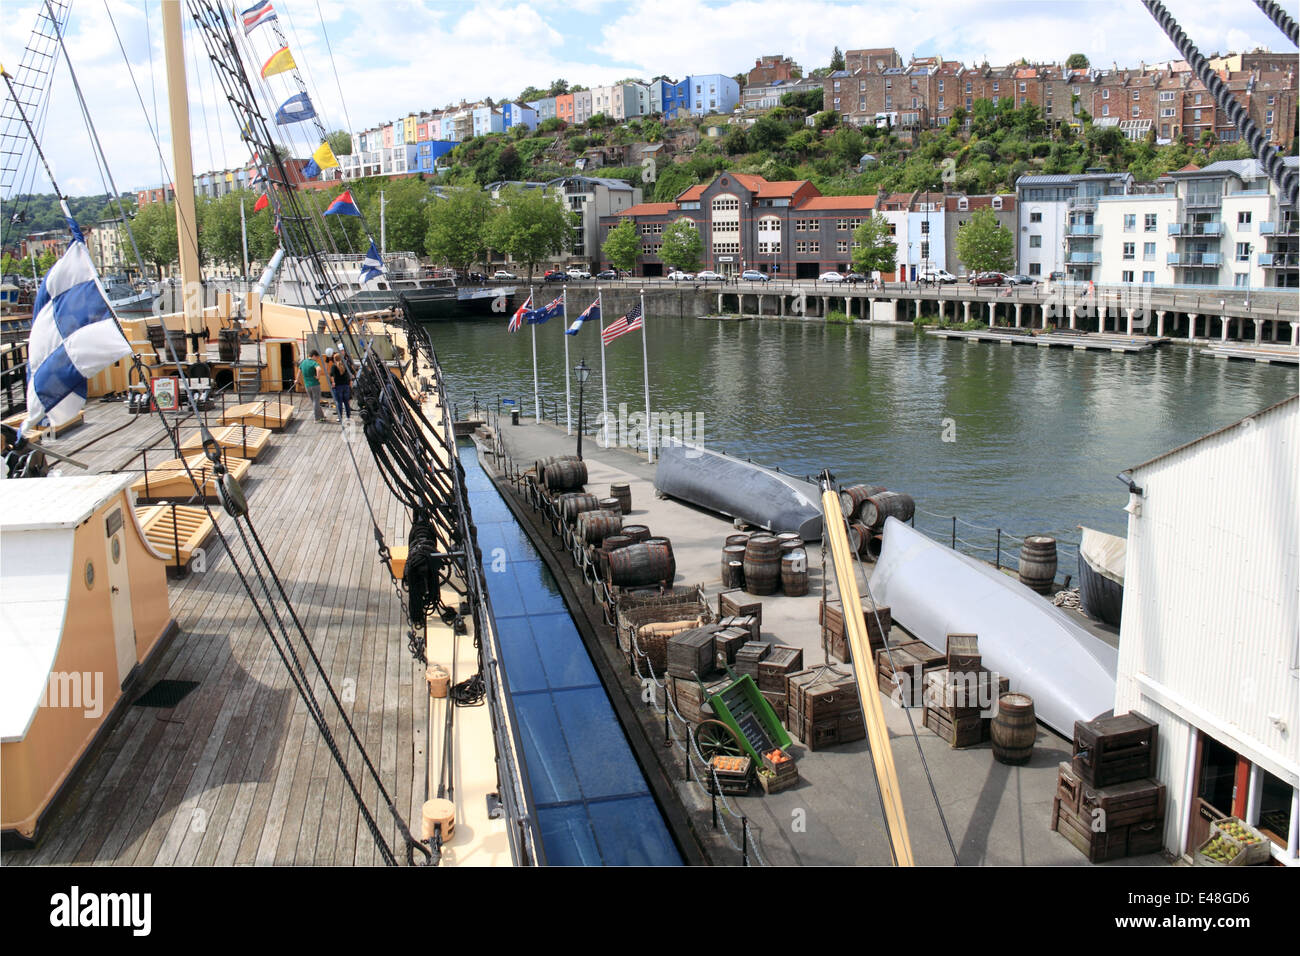 Quayside by SS Great Britain, Bristol Docks, England, Great Britain, United Kingdom, UK, Europe Stock Photo